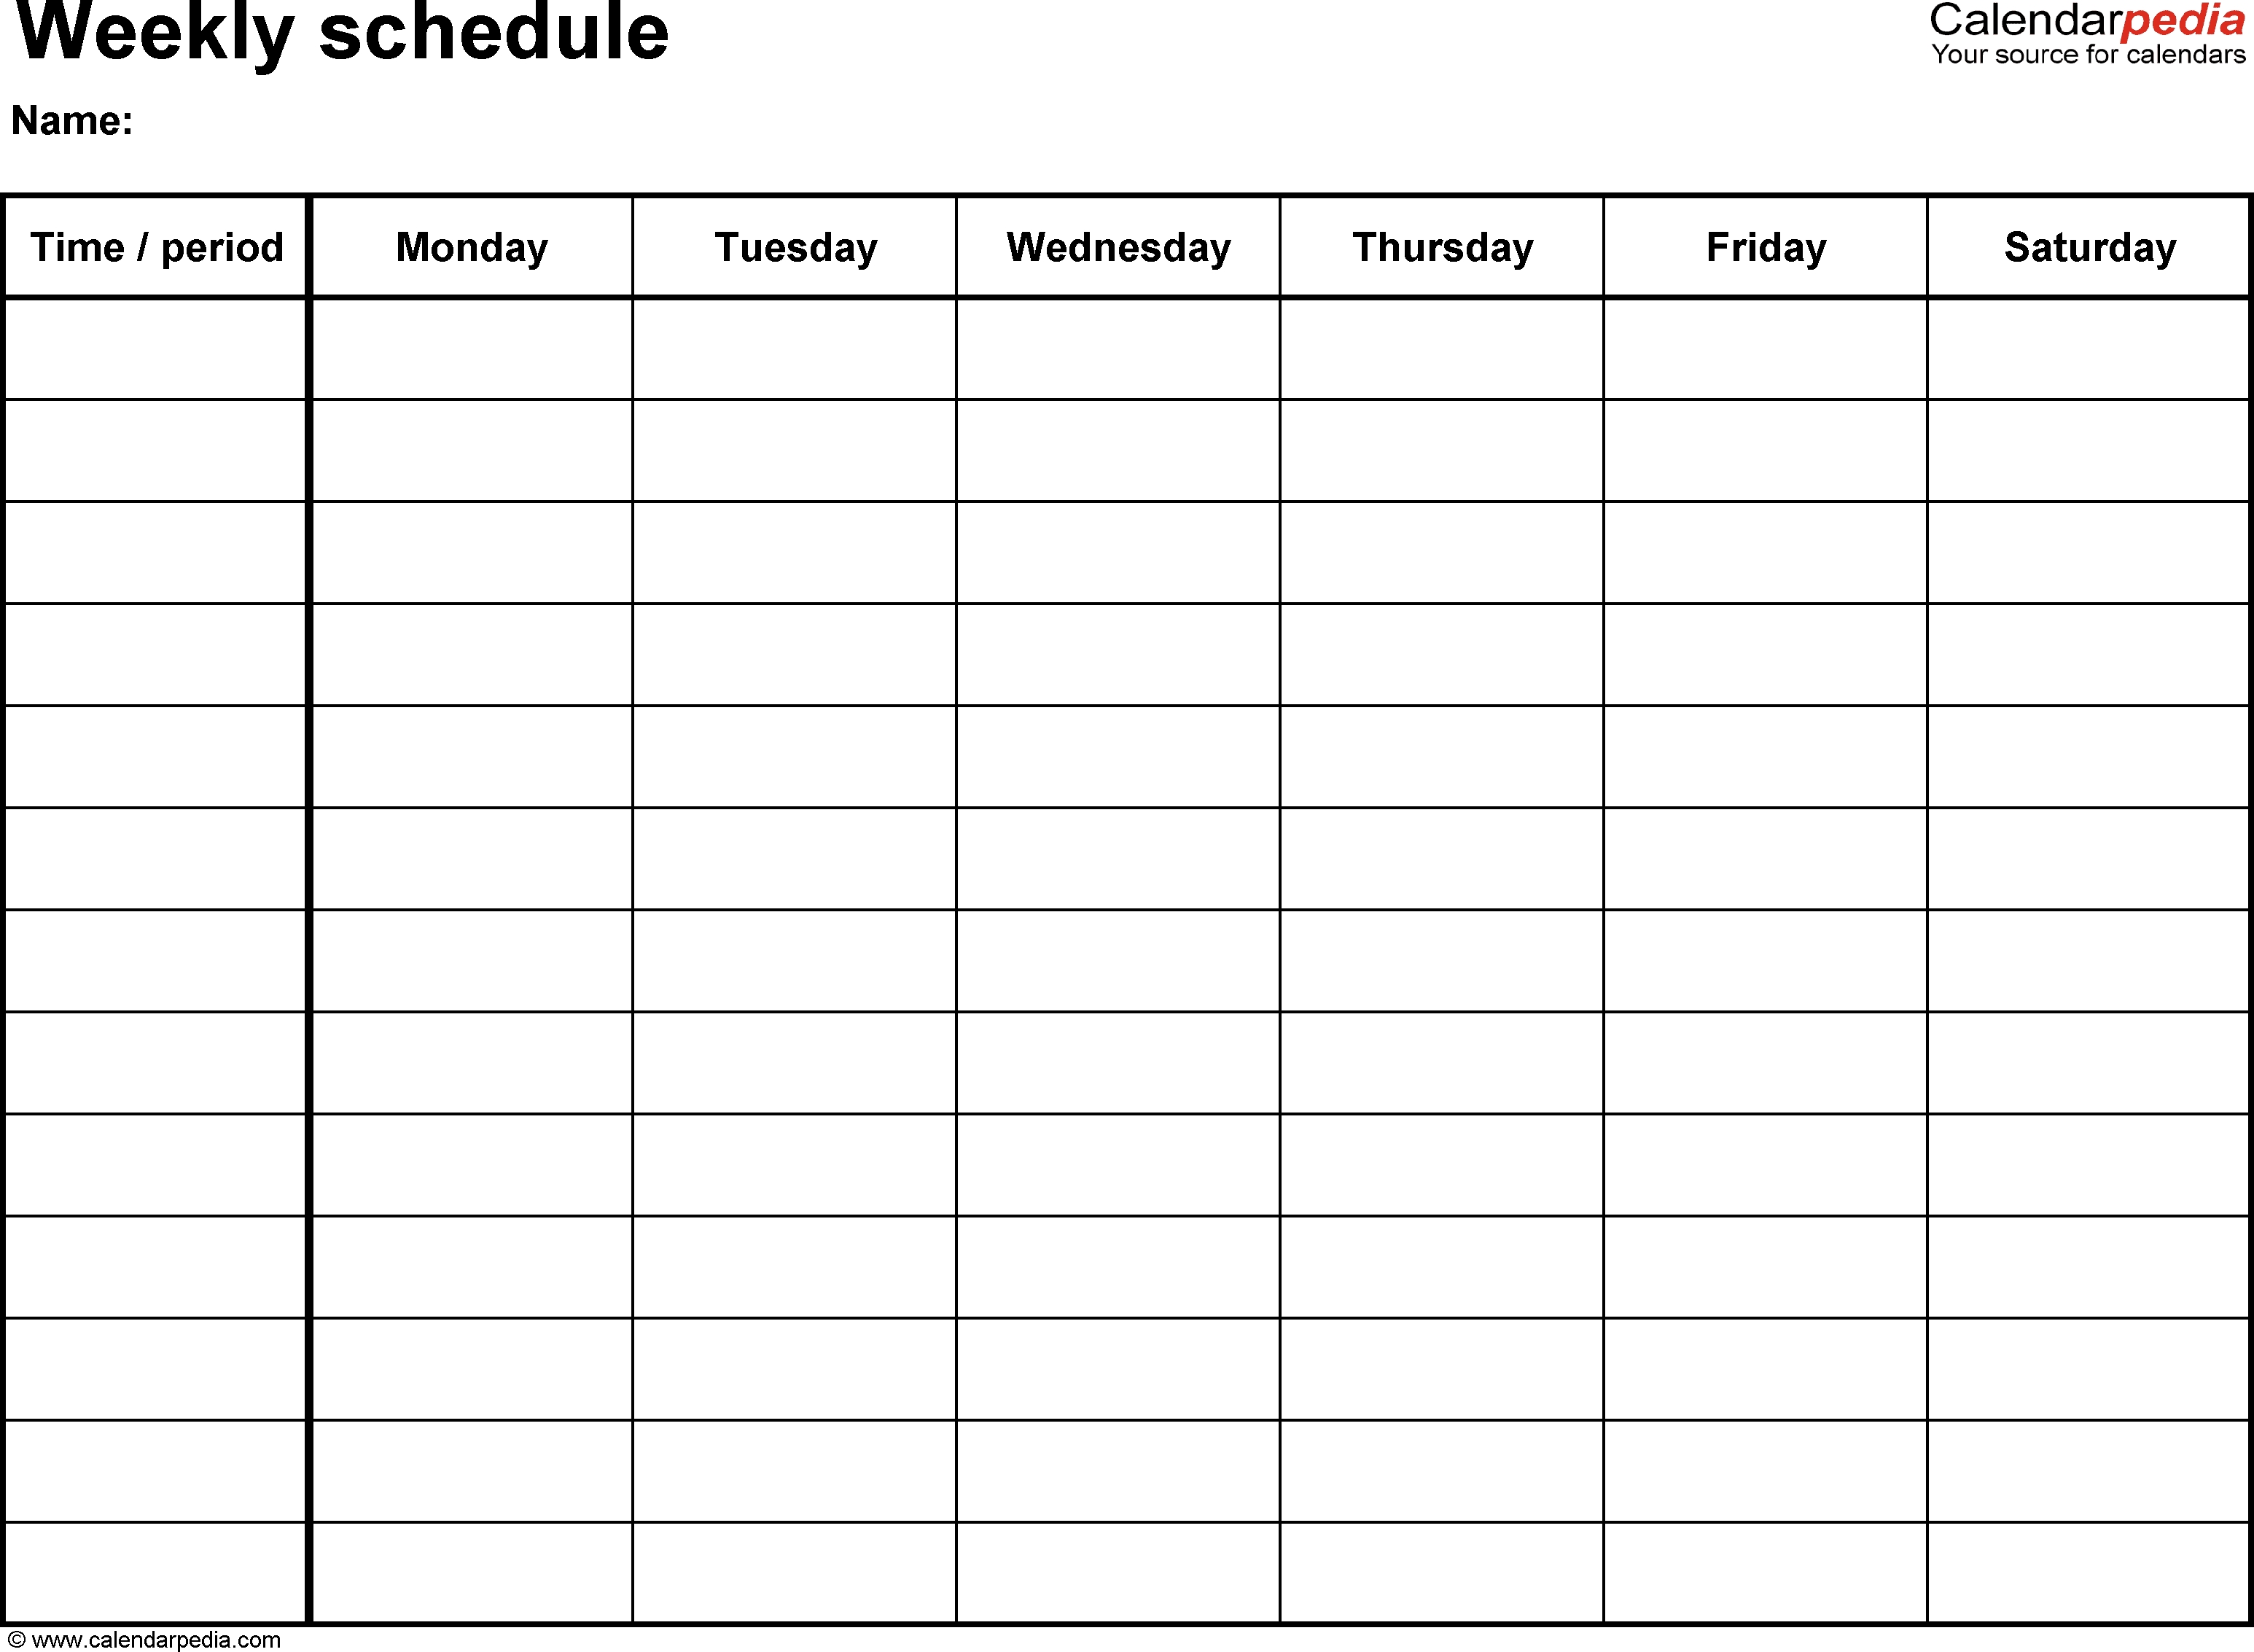 Free Weekly Schedule Templates For Word - 18 Templates_1 Week Calendar Blank